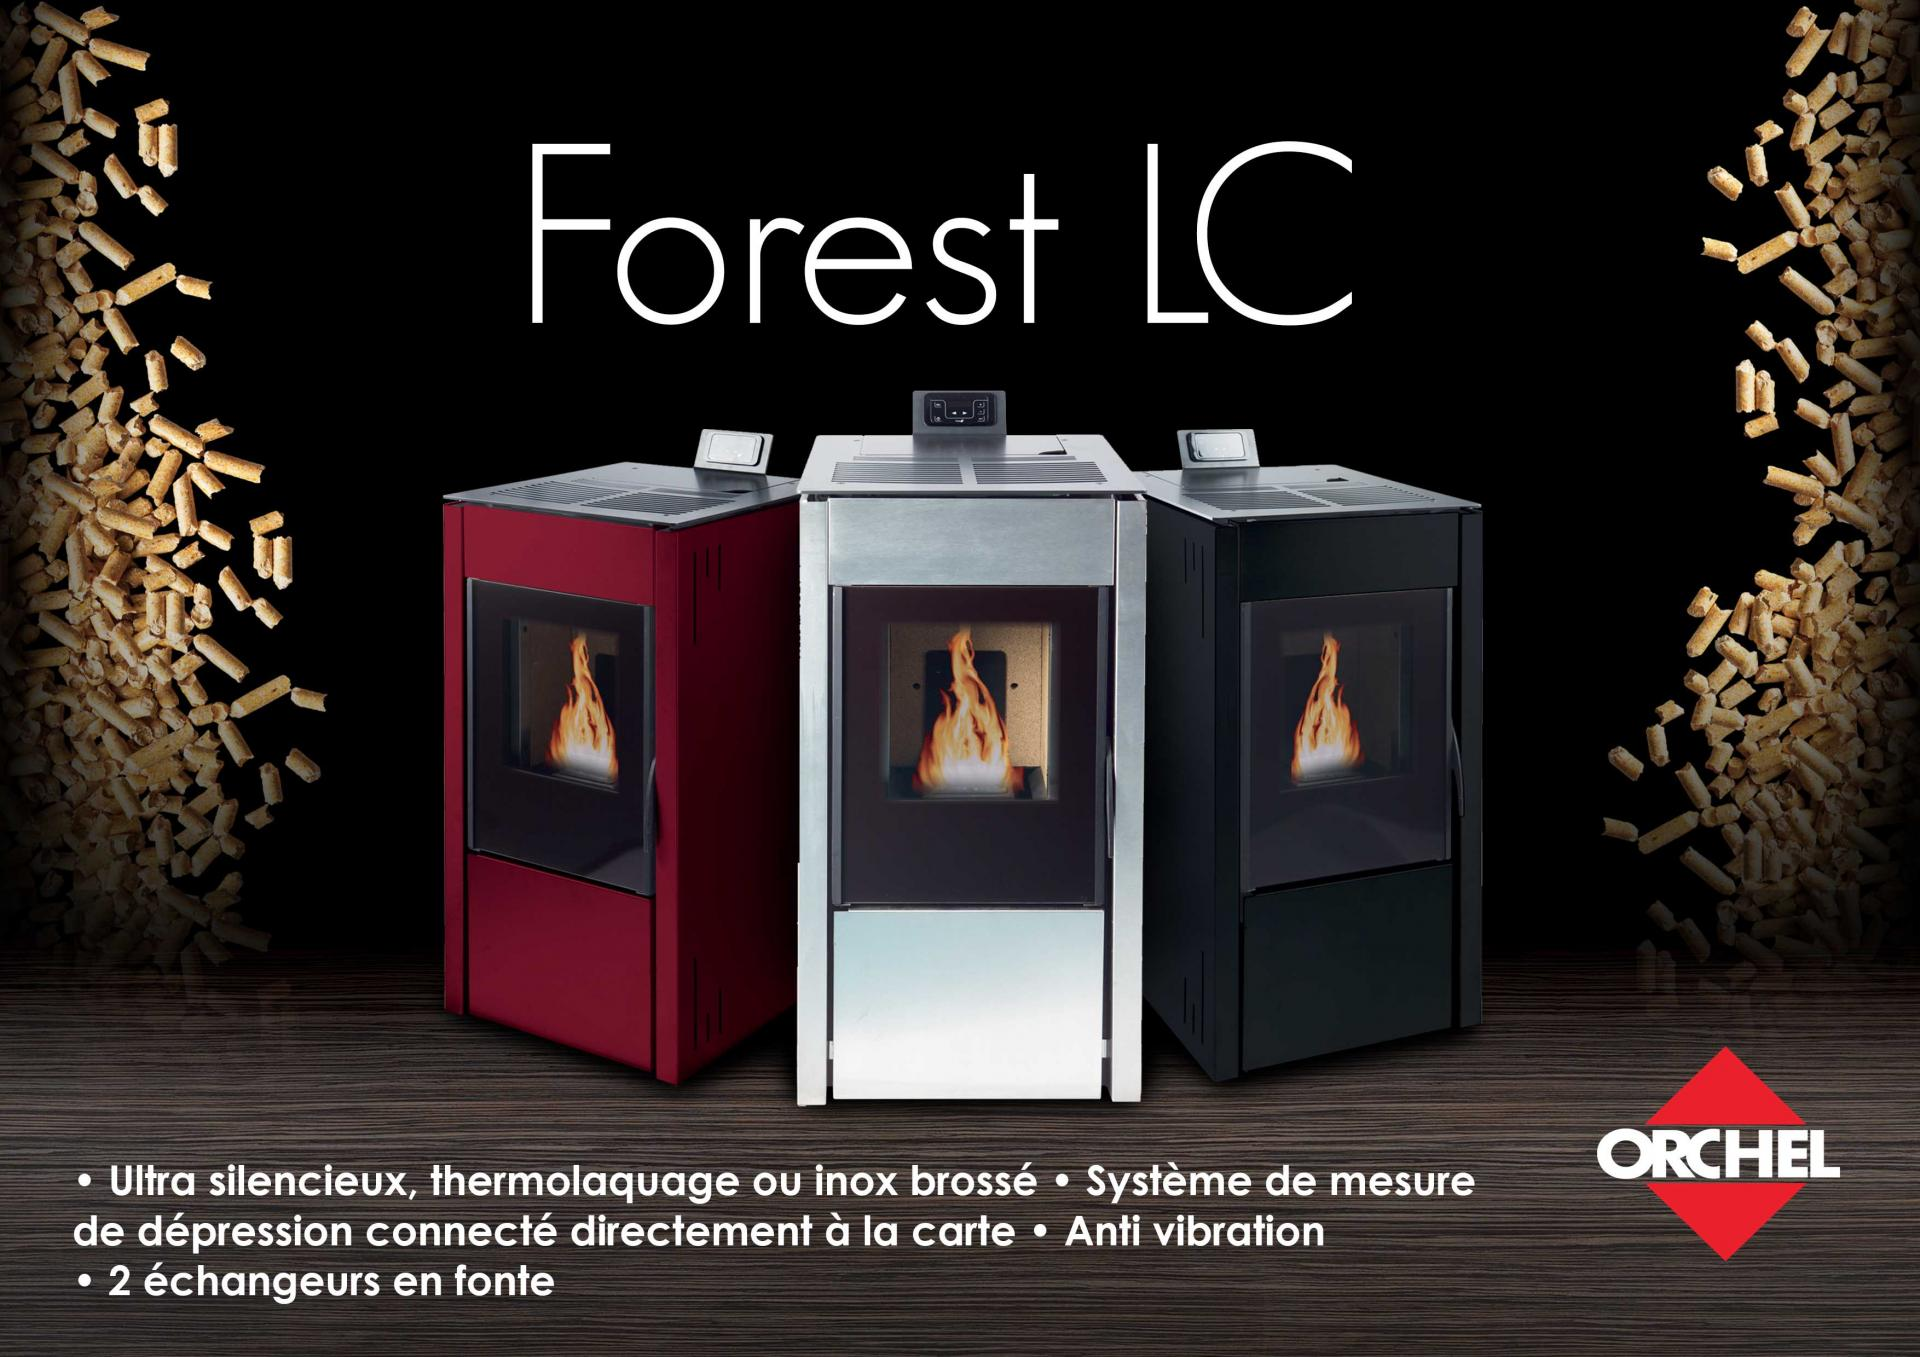 2 forest lc